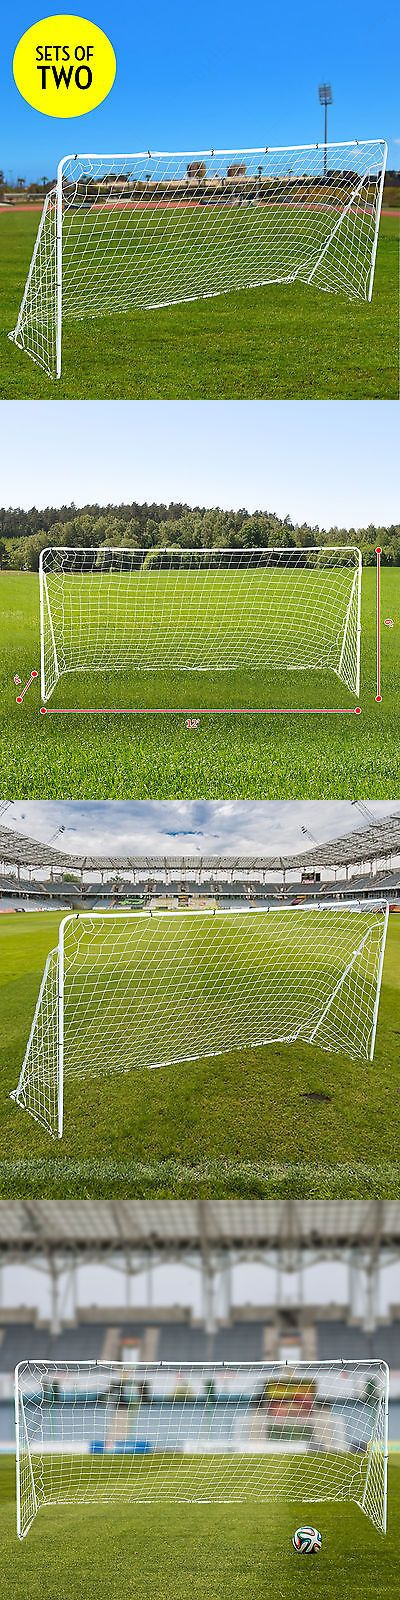 sporting goods: (2) Set 12 X 6 Ft Portable Football W Net Soccer Goal Outdoor Sport Training -> BUY IT NOW ONLY: $86.9 on eBay!